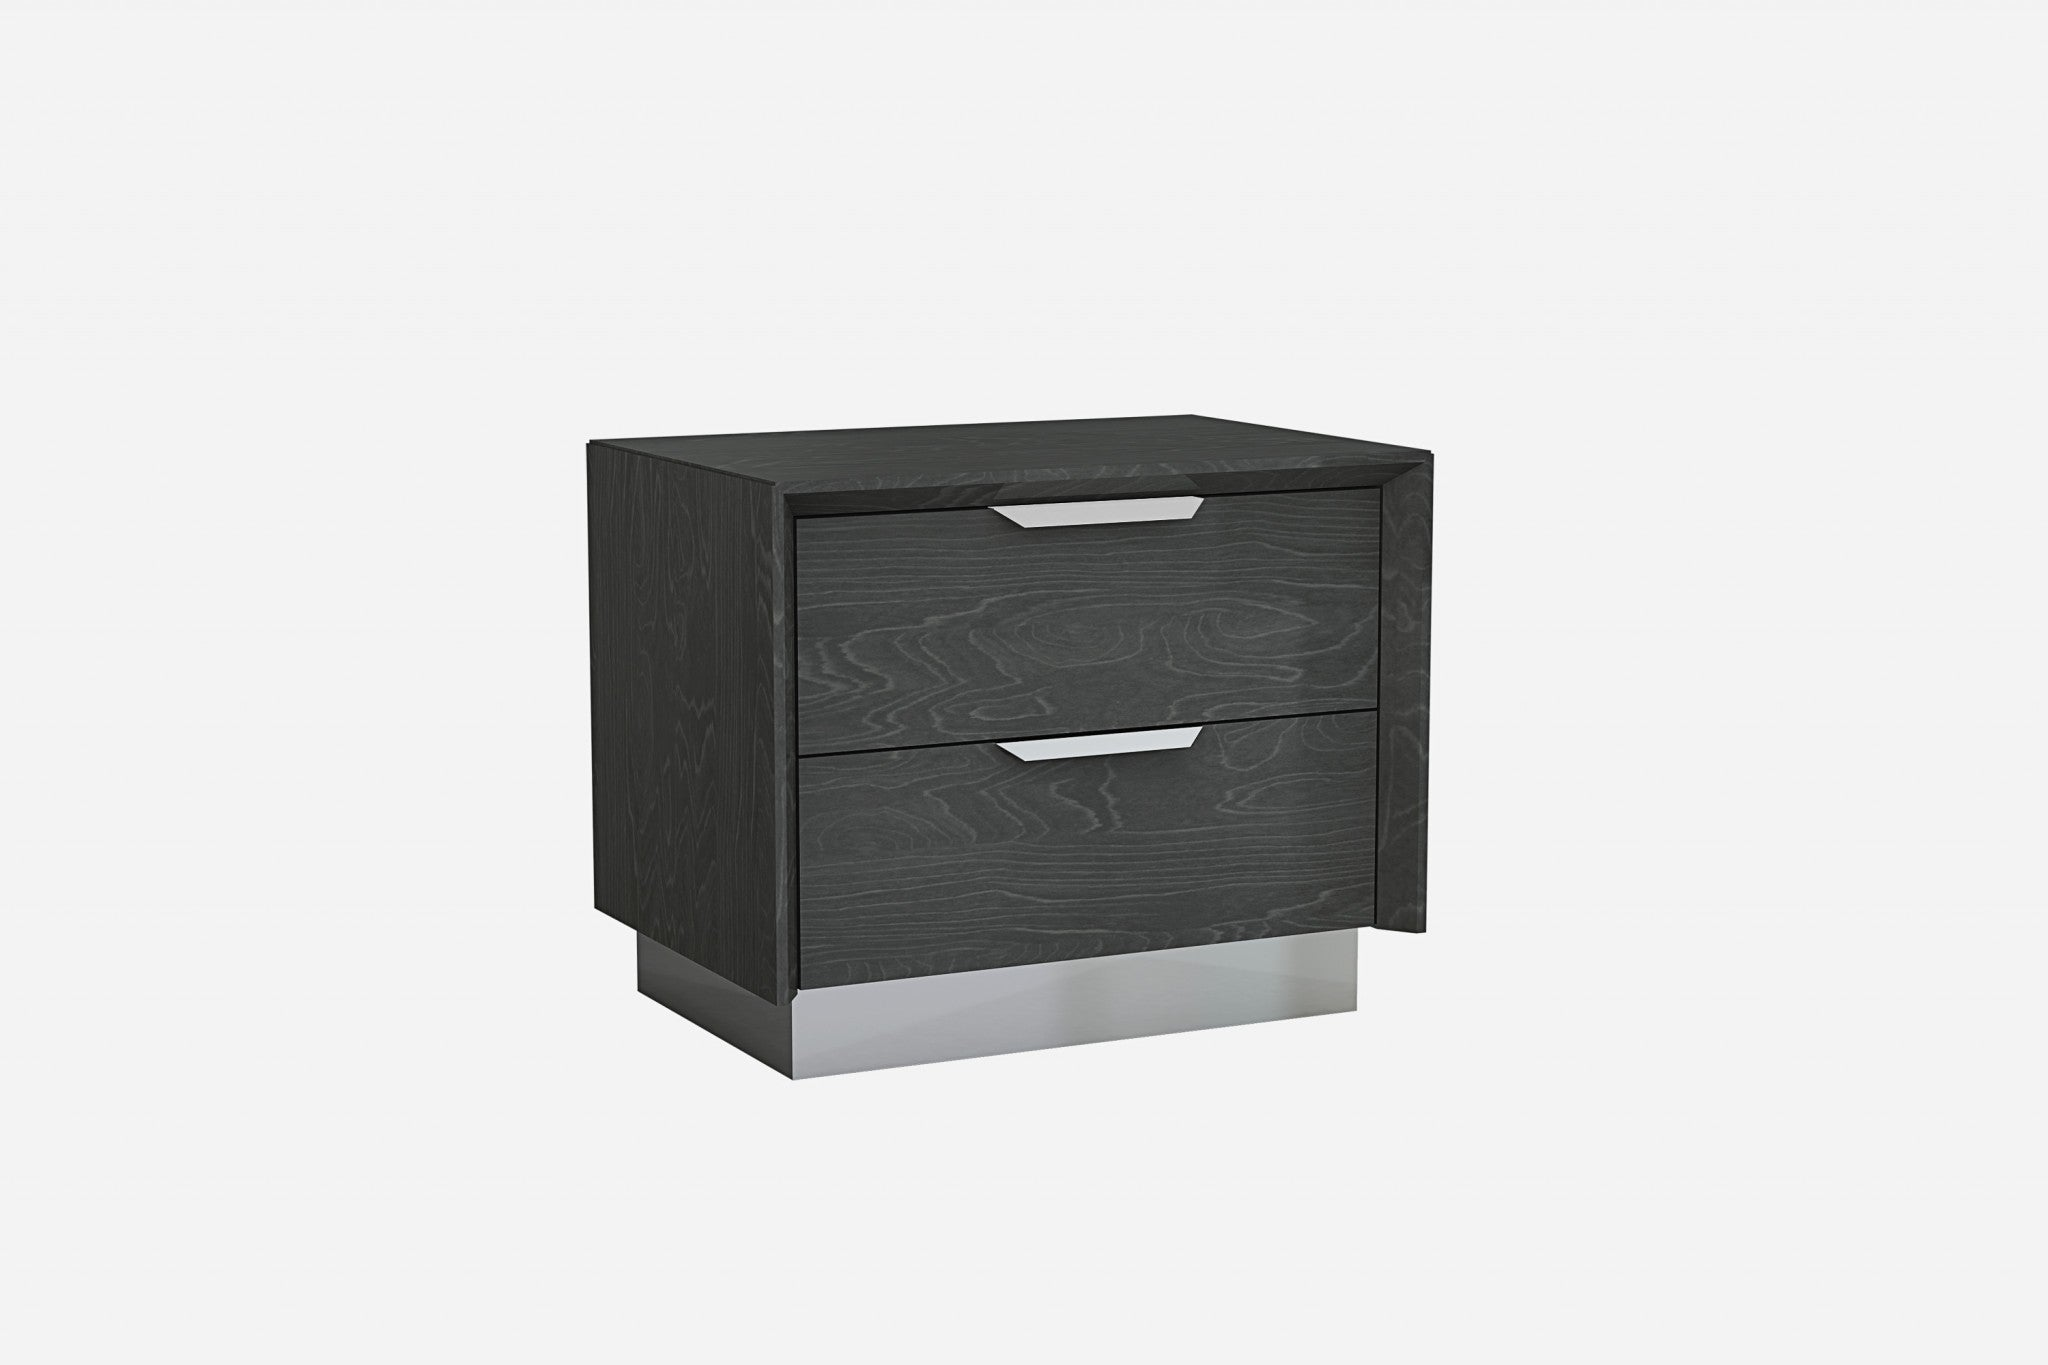 "25"" X 17"" X 21"" Grey Stainless Steel Nightstand"